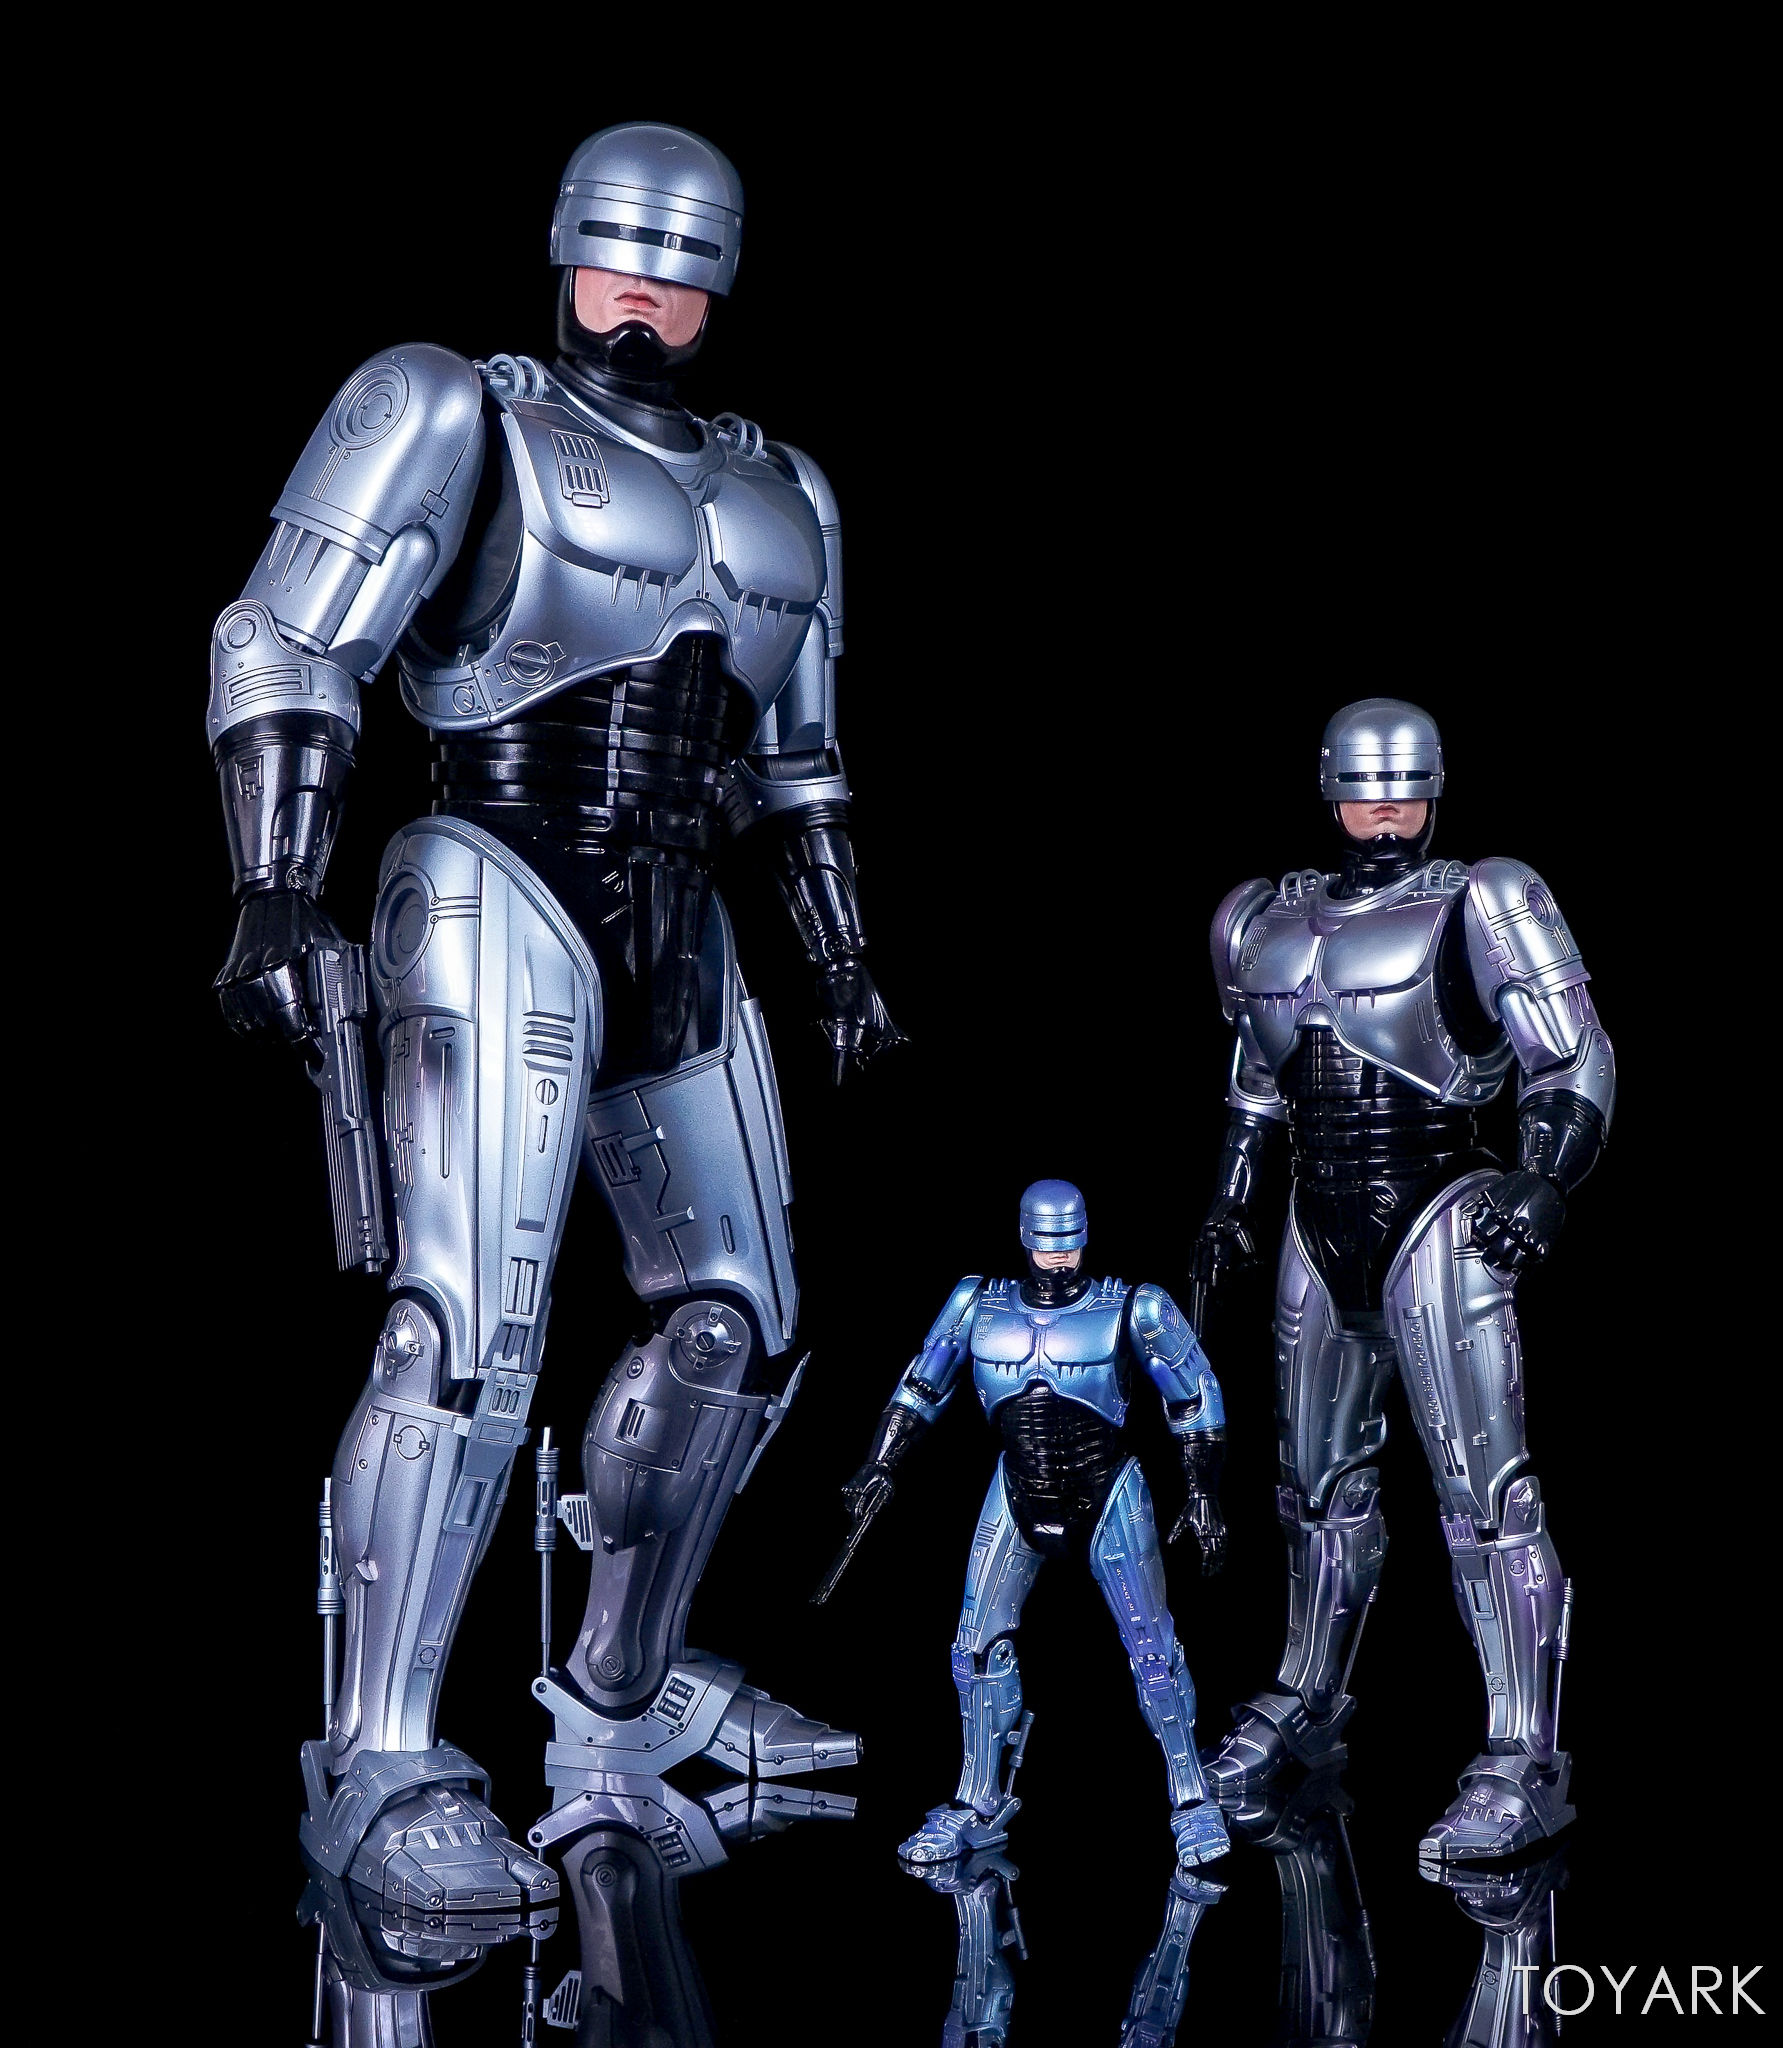 http://news.toyark.com/wp-content/uploads/sites/4/2017/07/Enterbay-Robocop-3-HD-Masterpiece-063.jpg